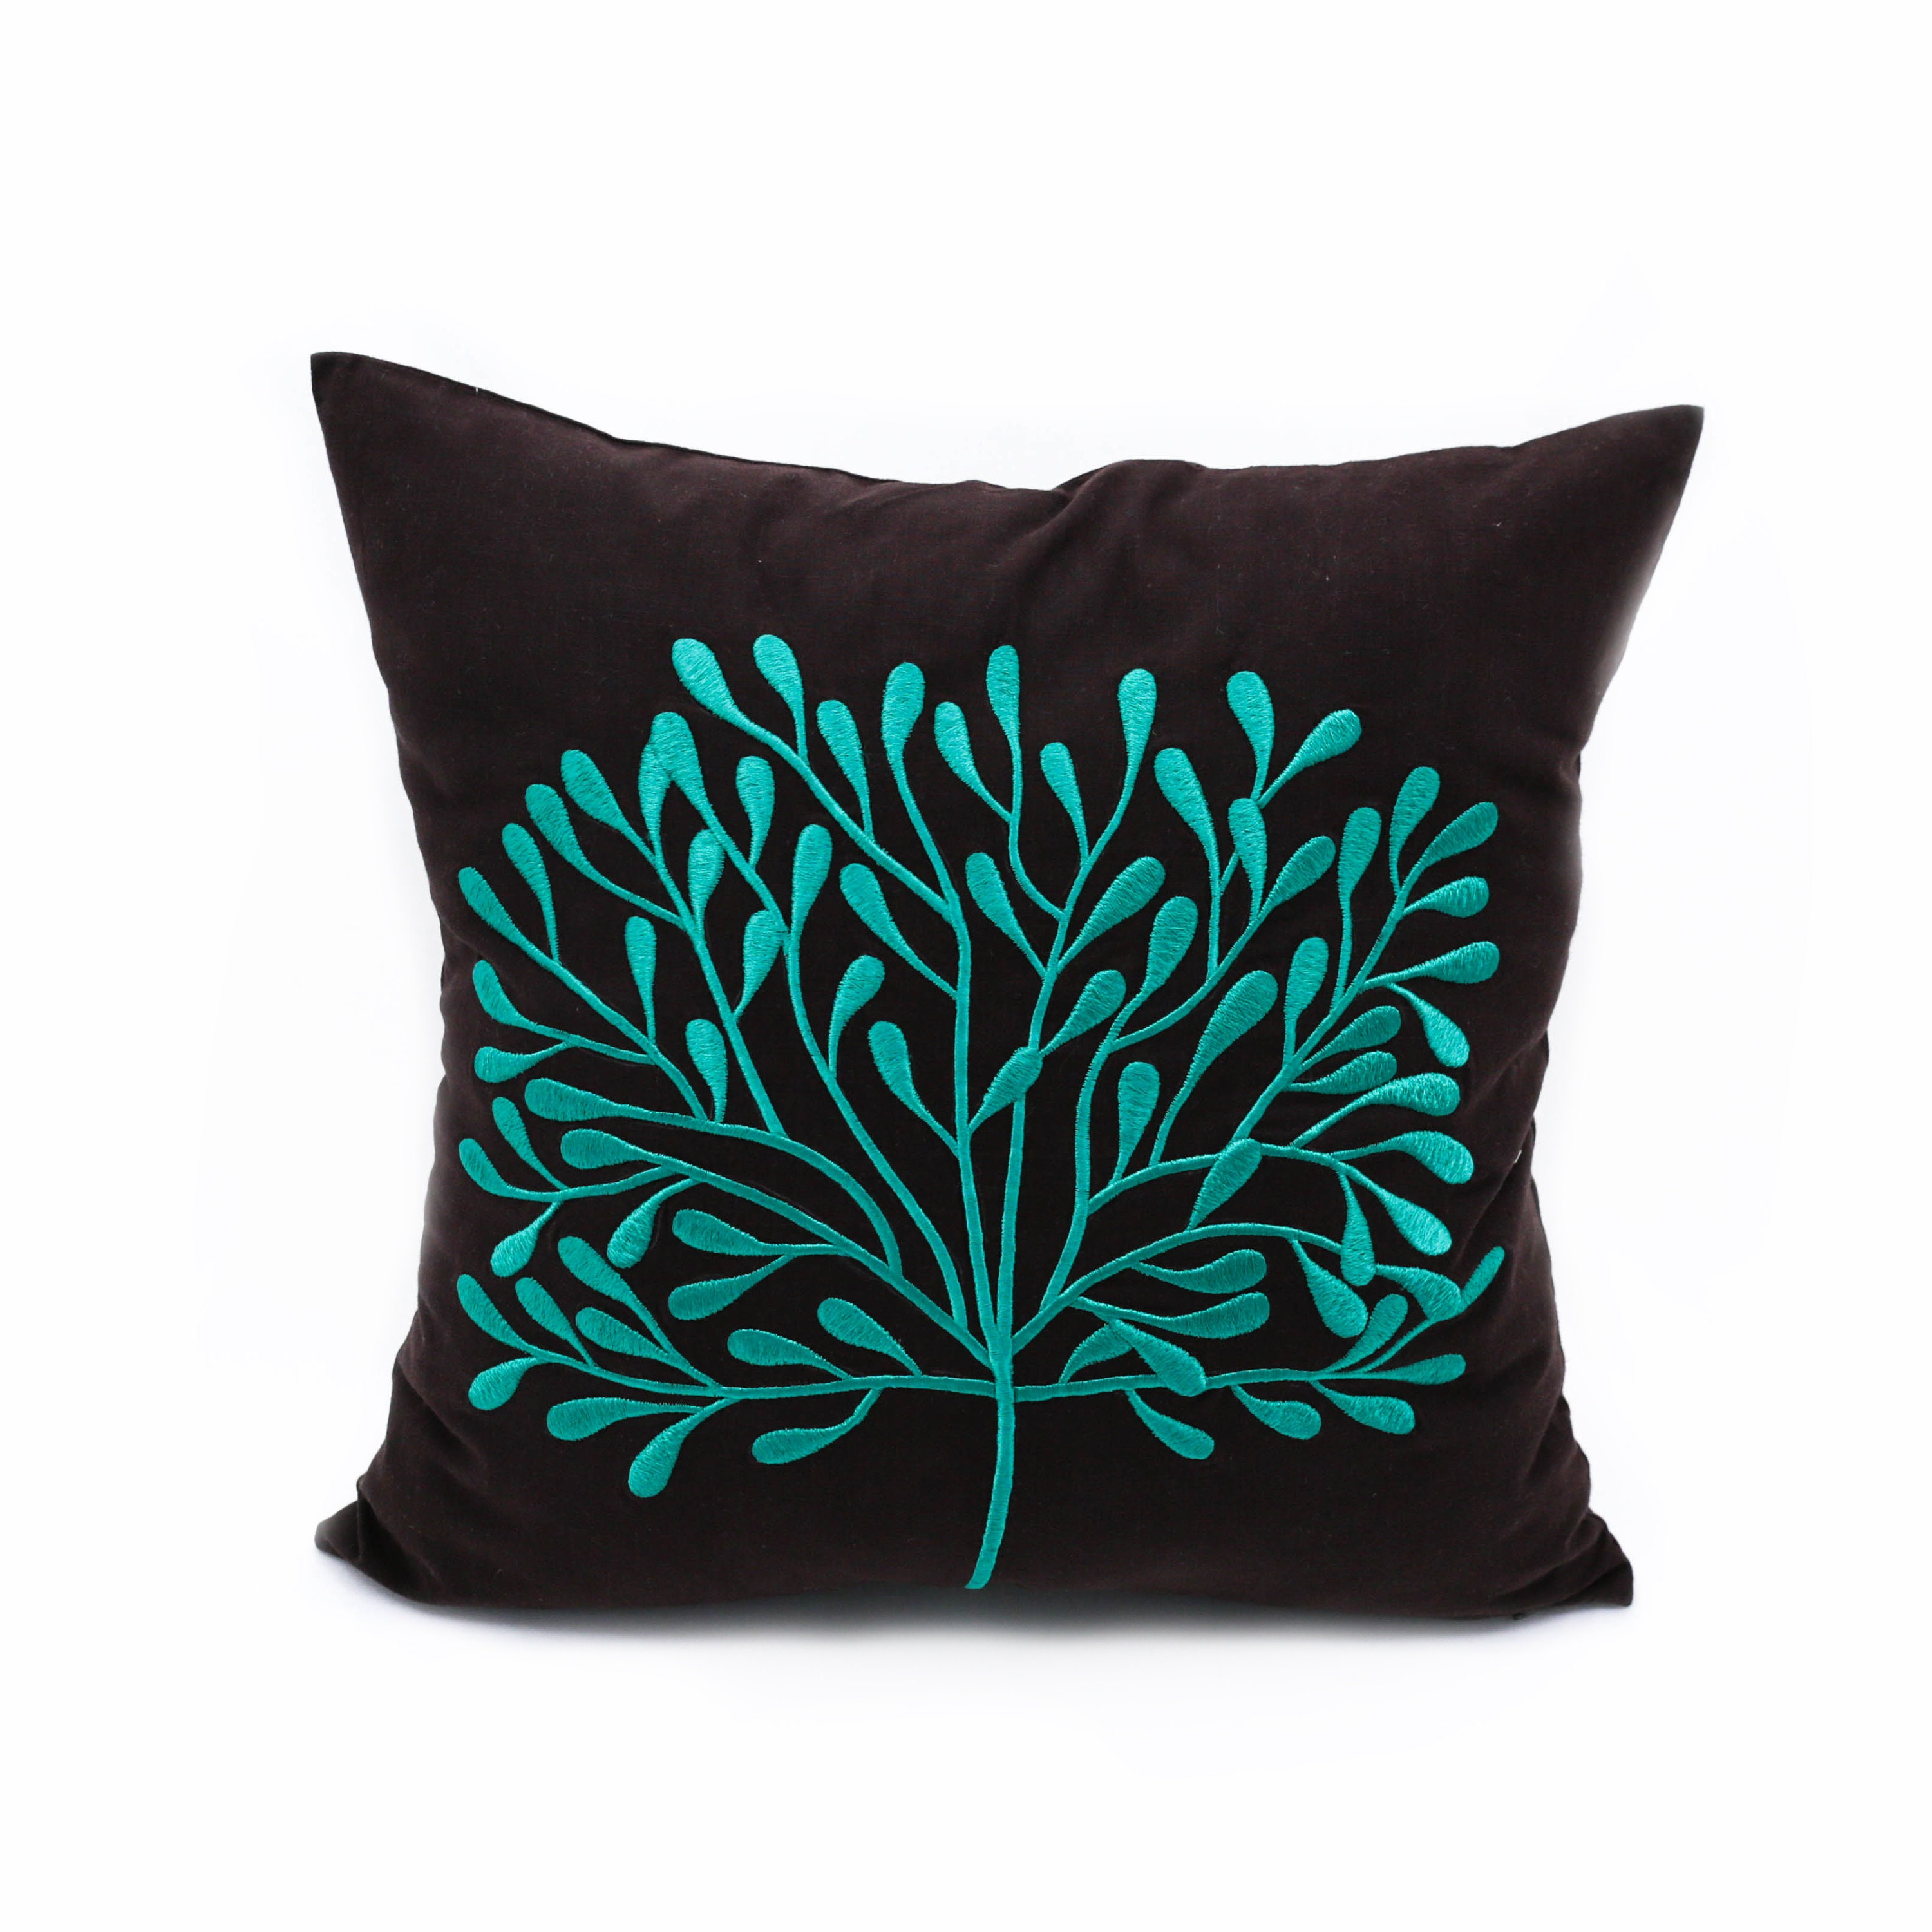 Teal Decorative Pillow Cover Home Decor Dark Brown Linen